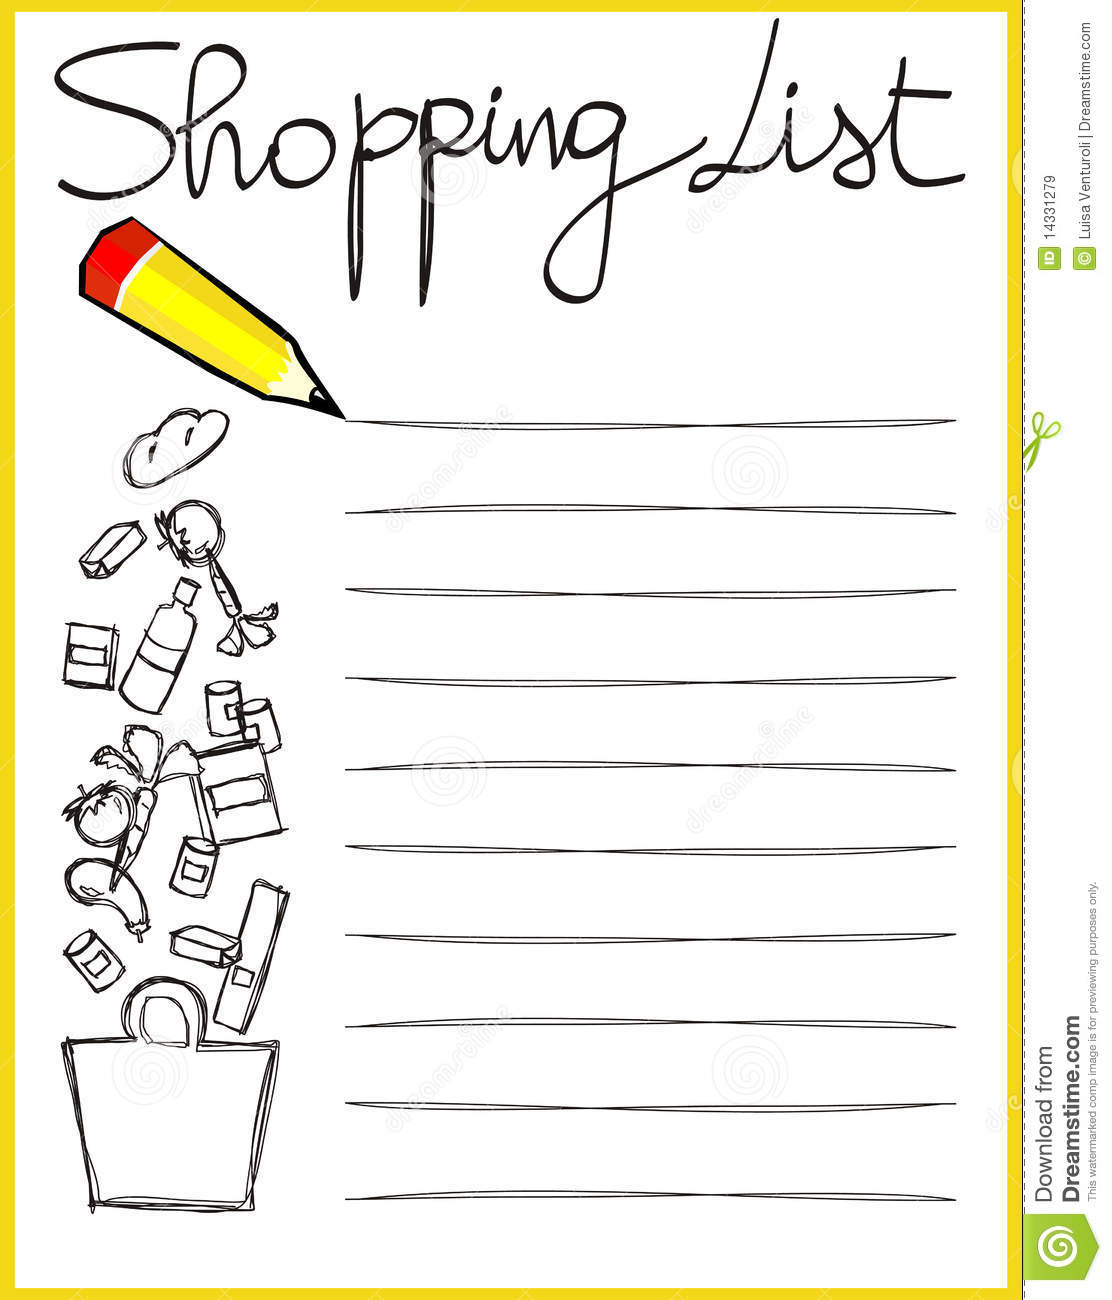 shoping list